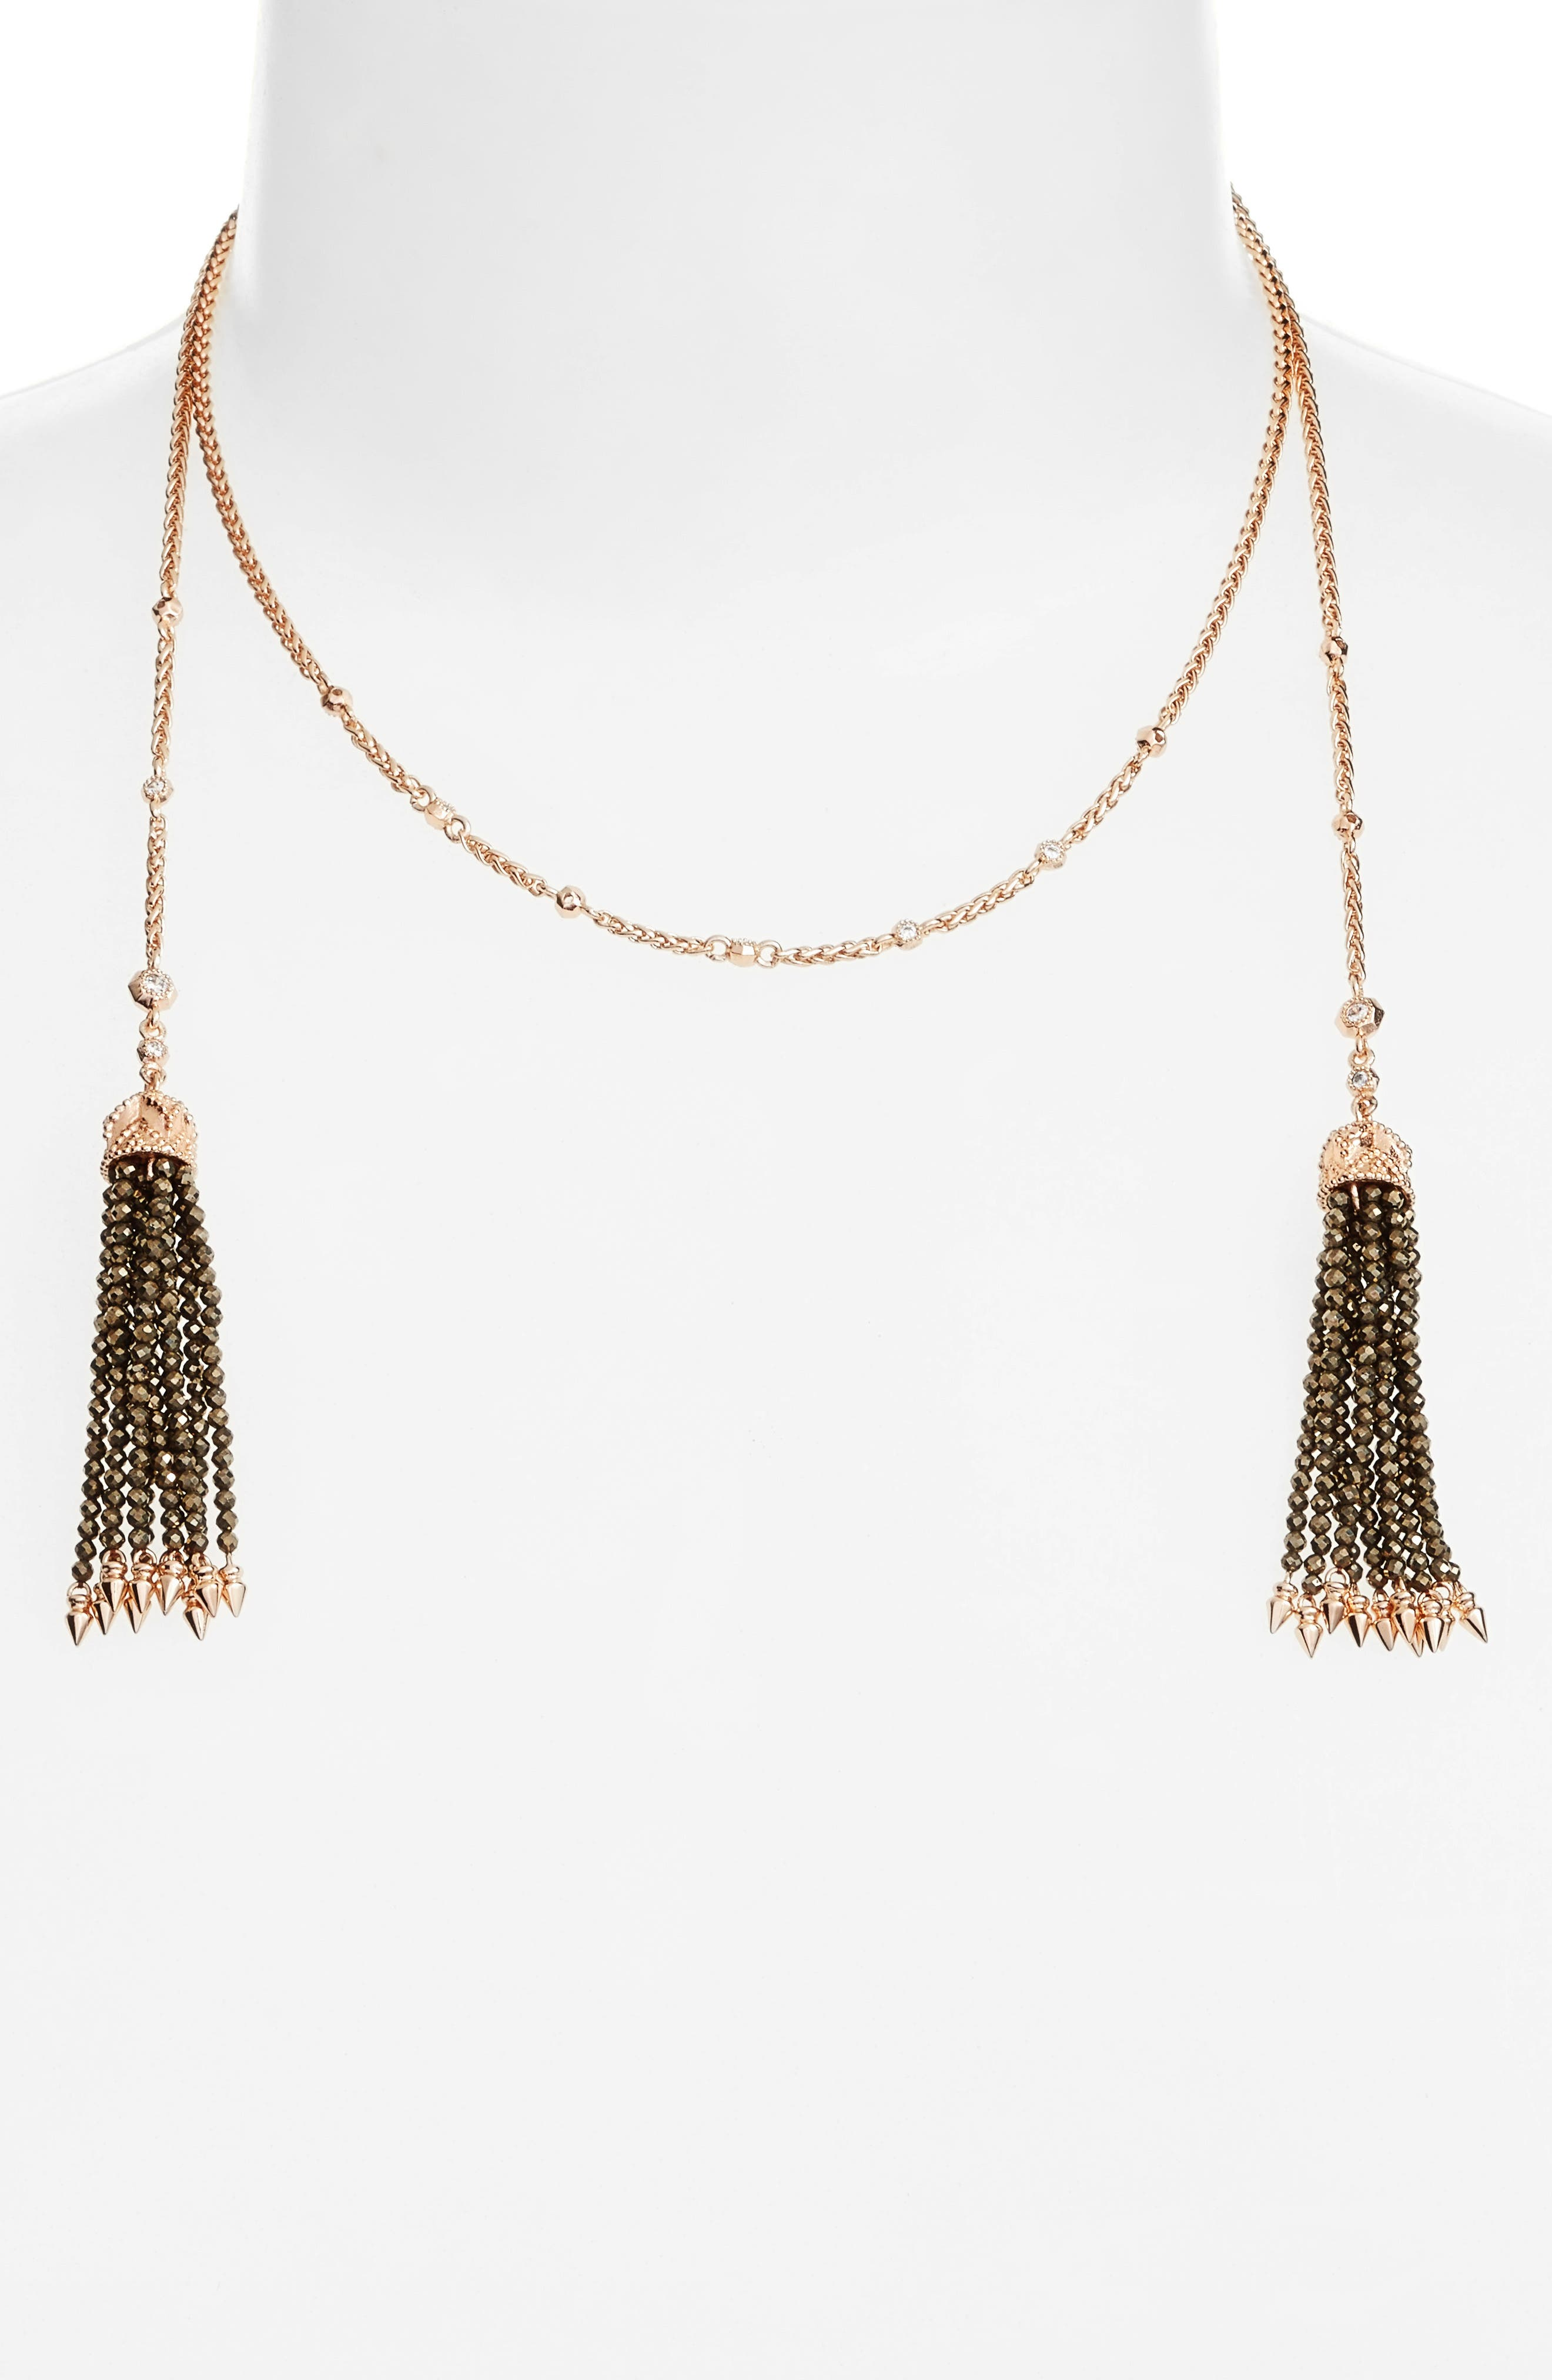 Kendra Scott Monique Tassel Necklace